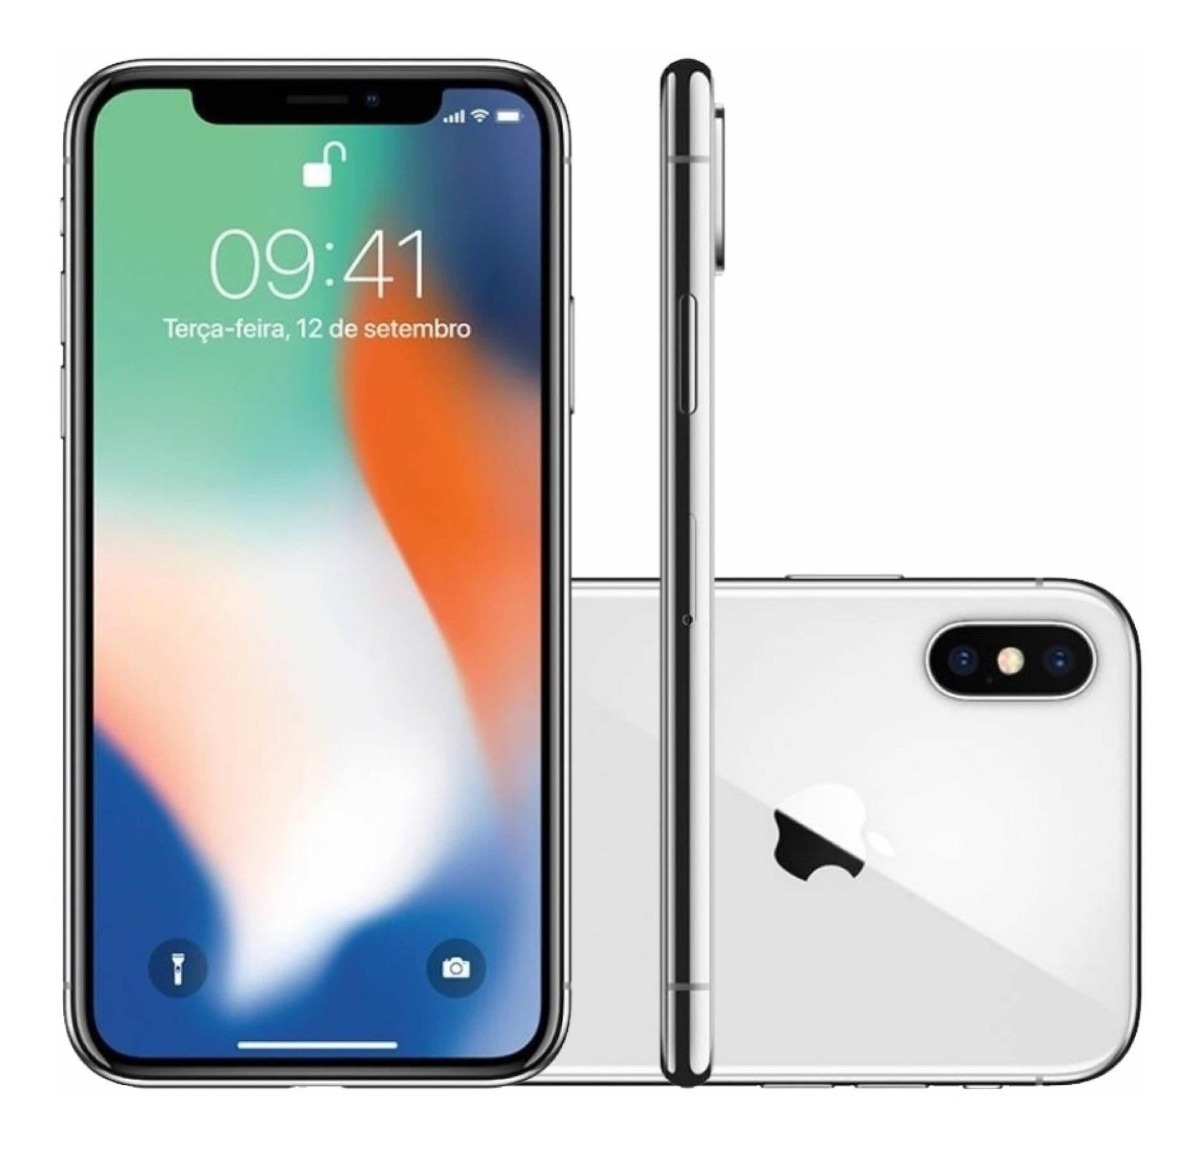 98d2aa819e9 celular apple iphone x 256gb 12 mpx 4k 5.8 1 ano garantia. Carregando zoom.